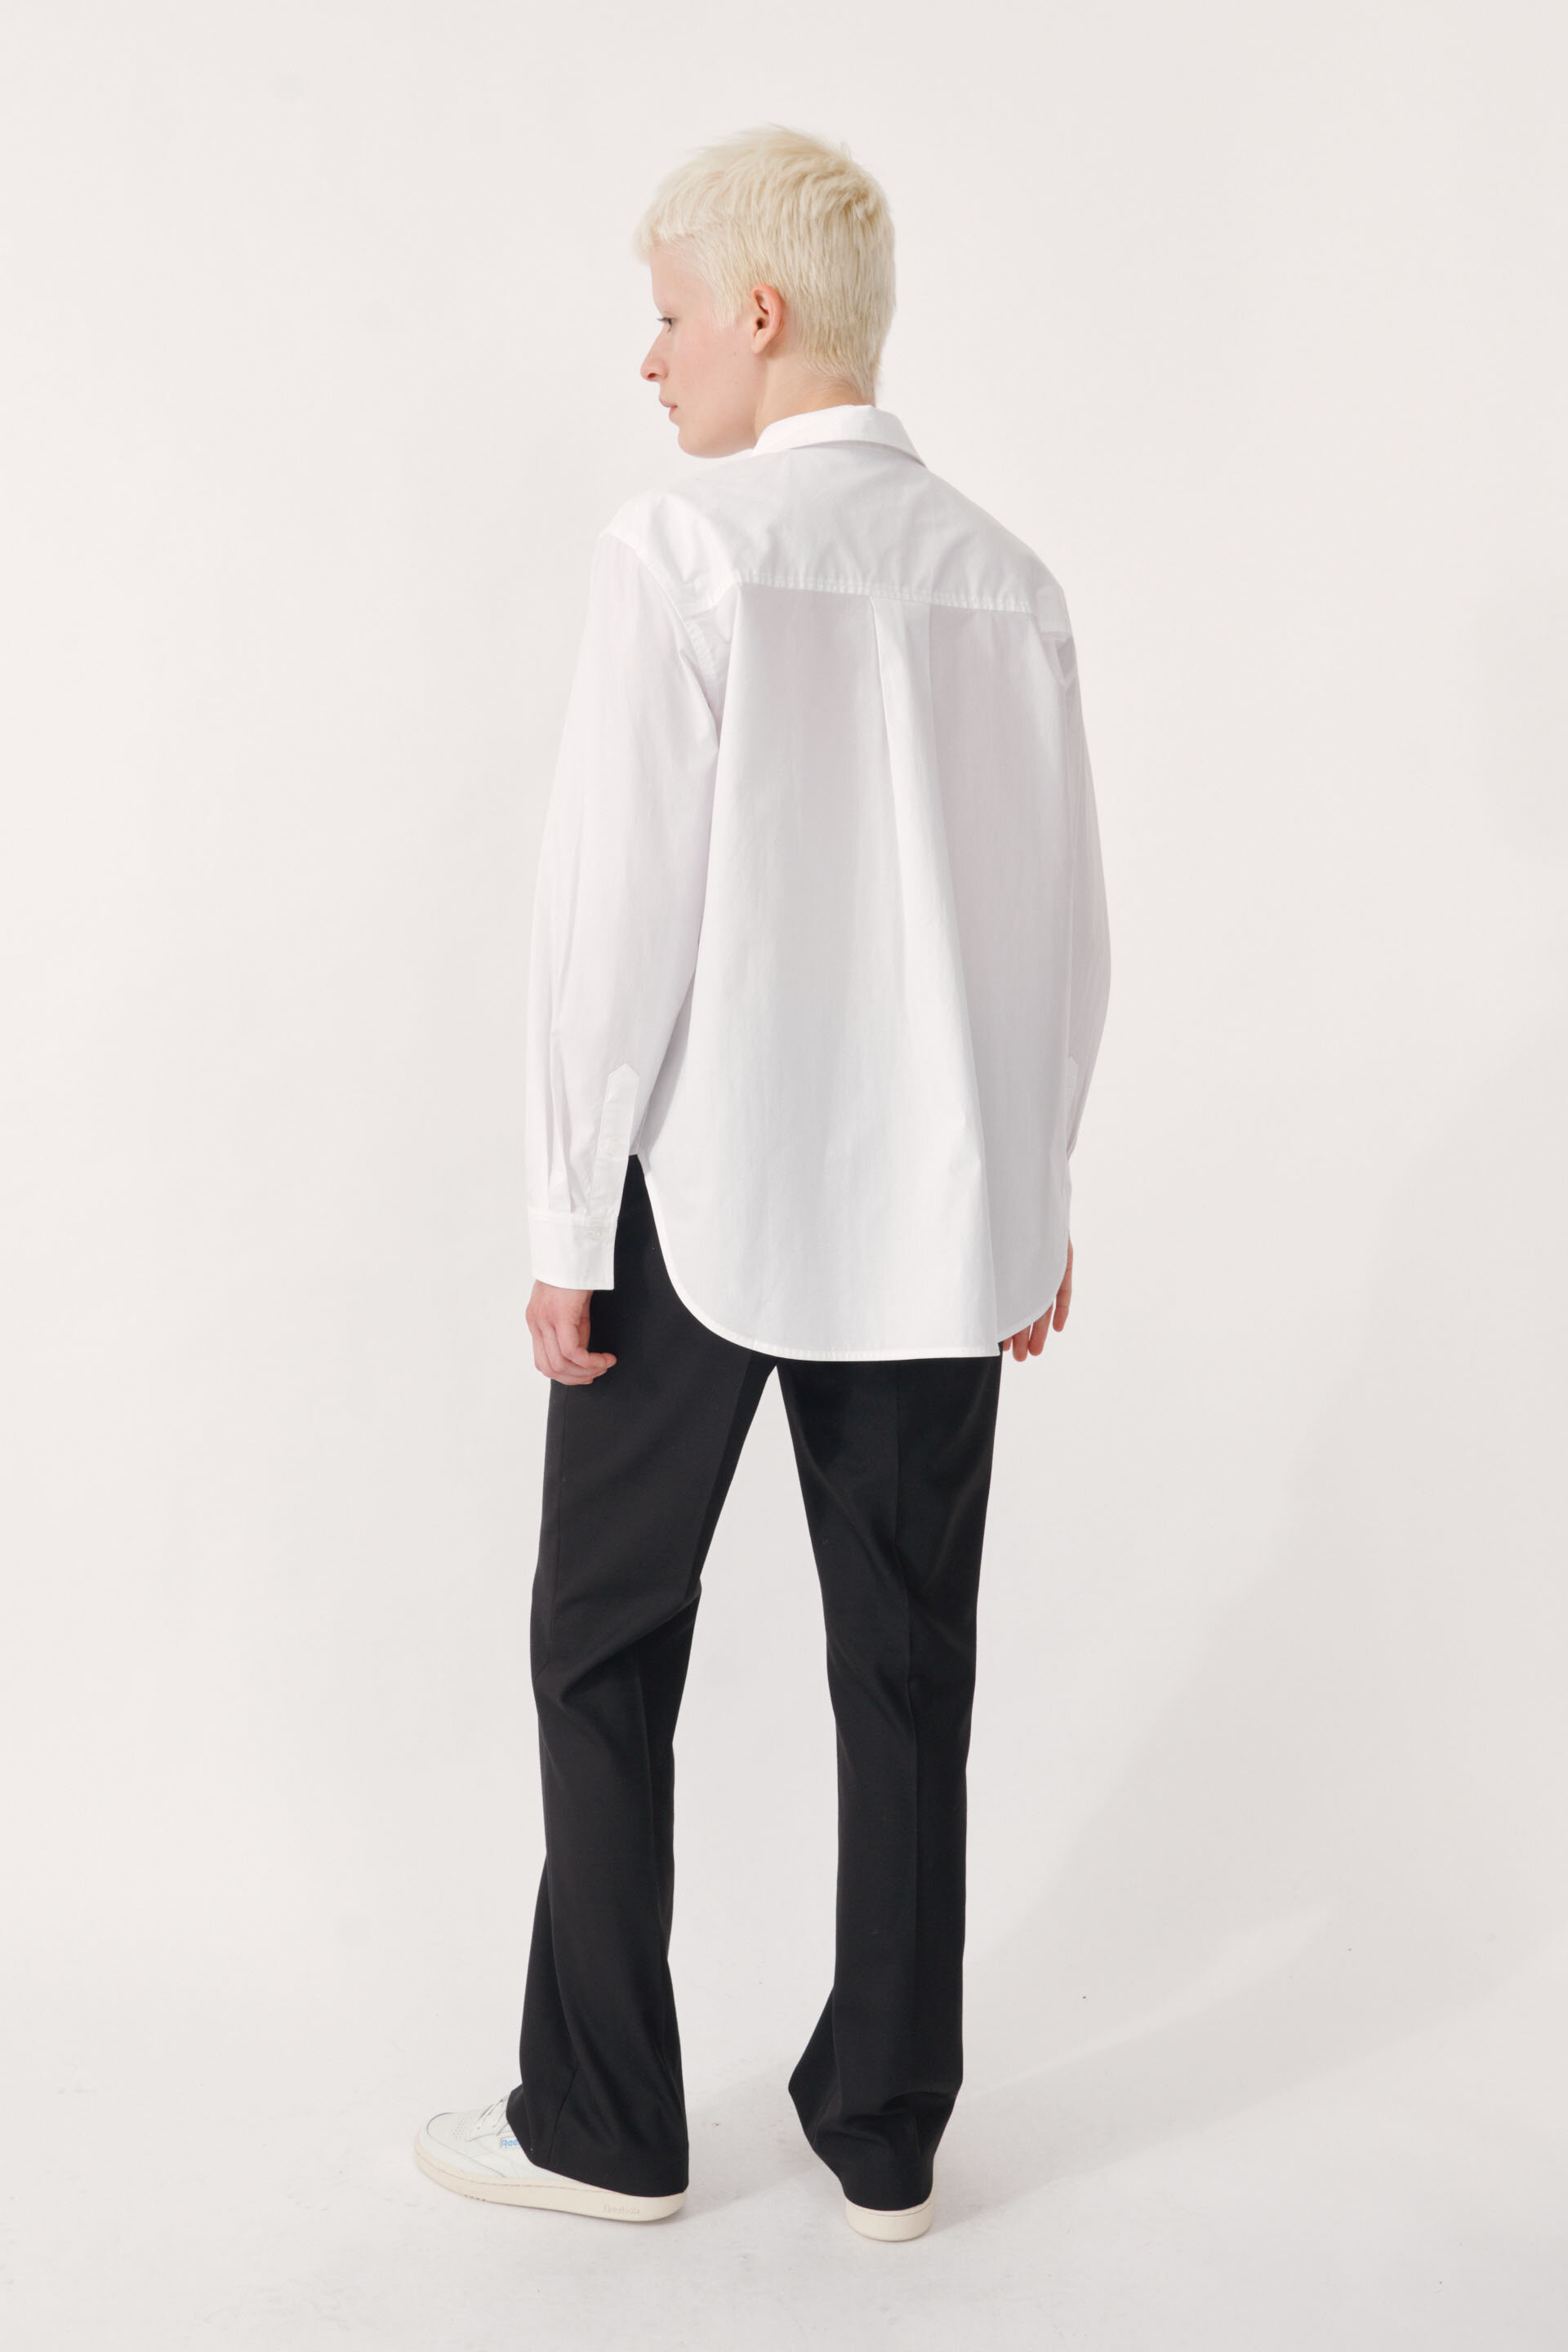 Maxene Shirt Bright White A crisp cotton button-up shirt with an oversized fit and long sleeves - detail image